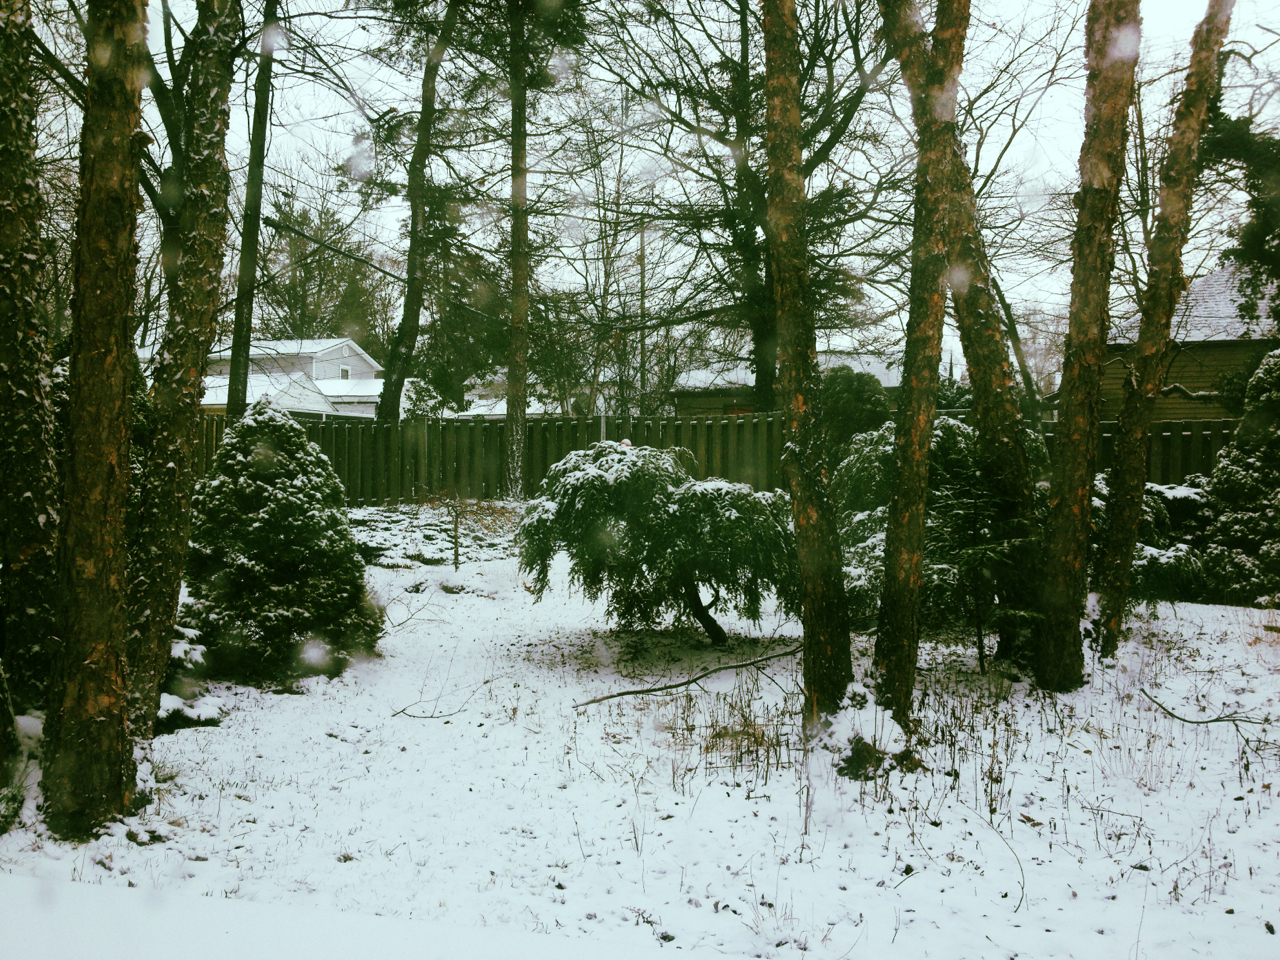 Ah, winter. I don't quite loathe you just yet in this photo.